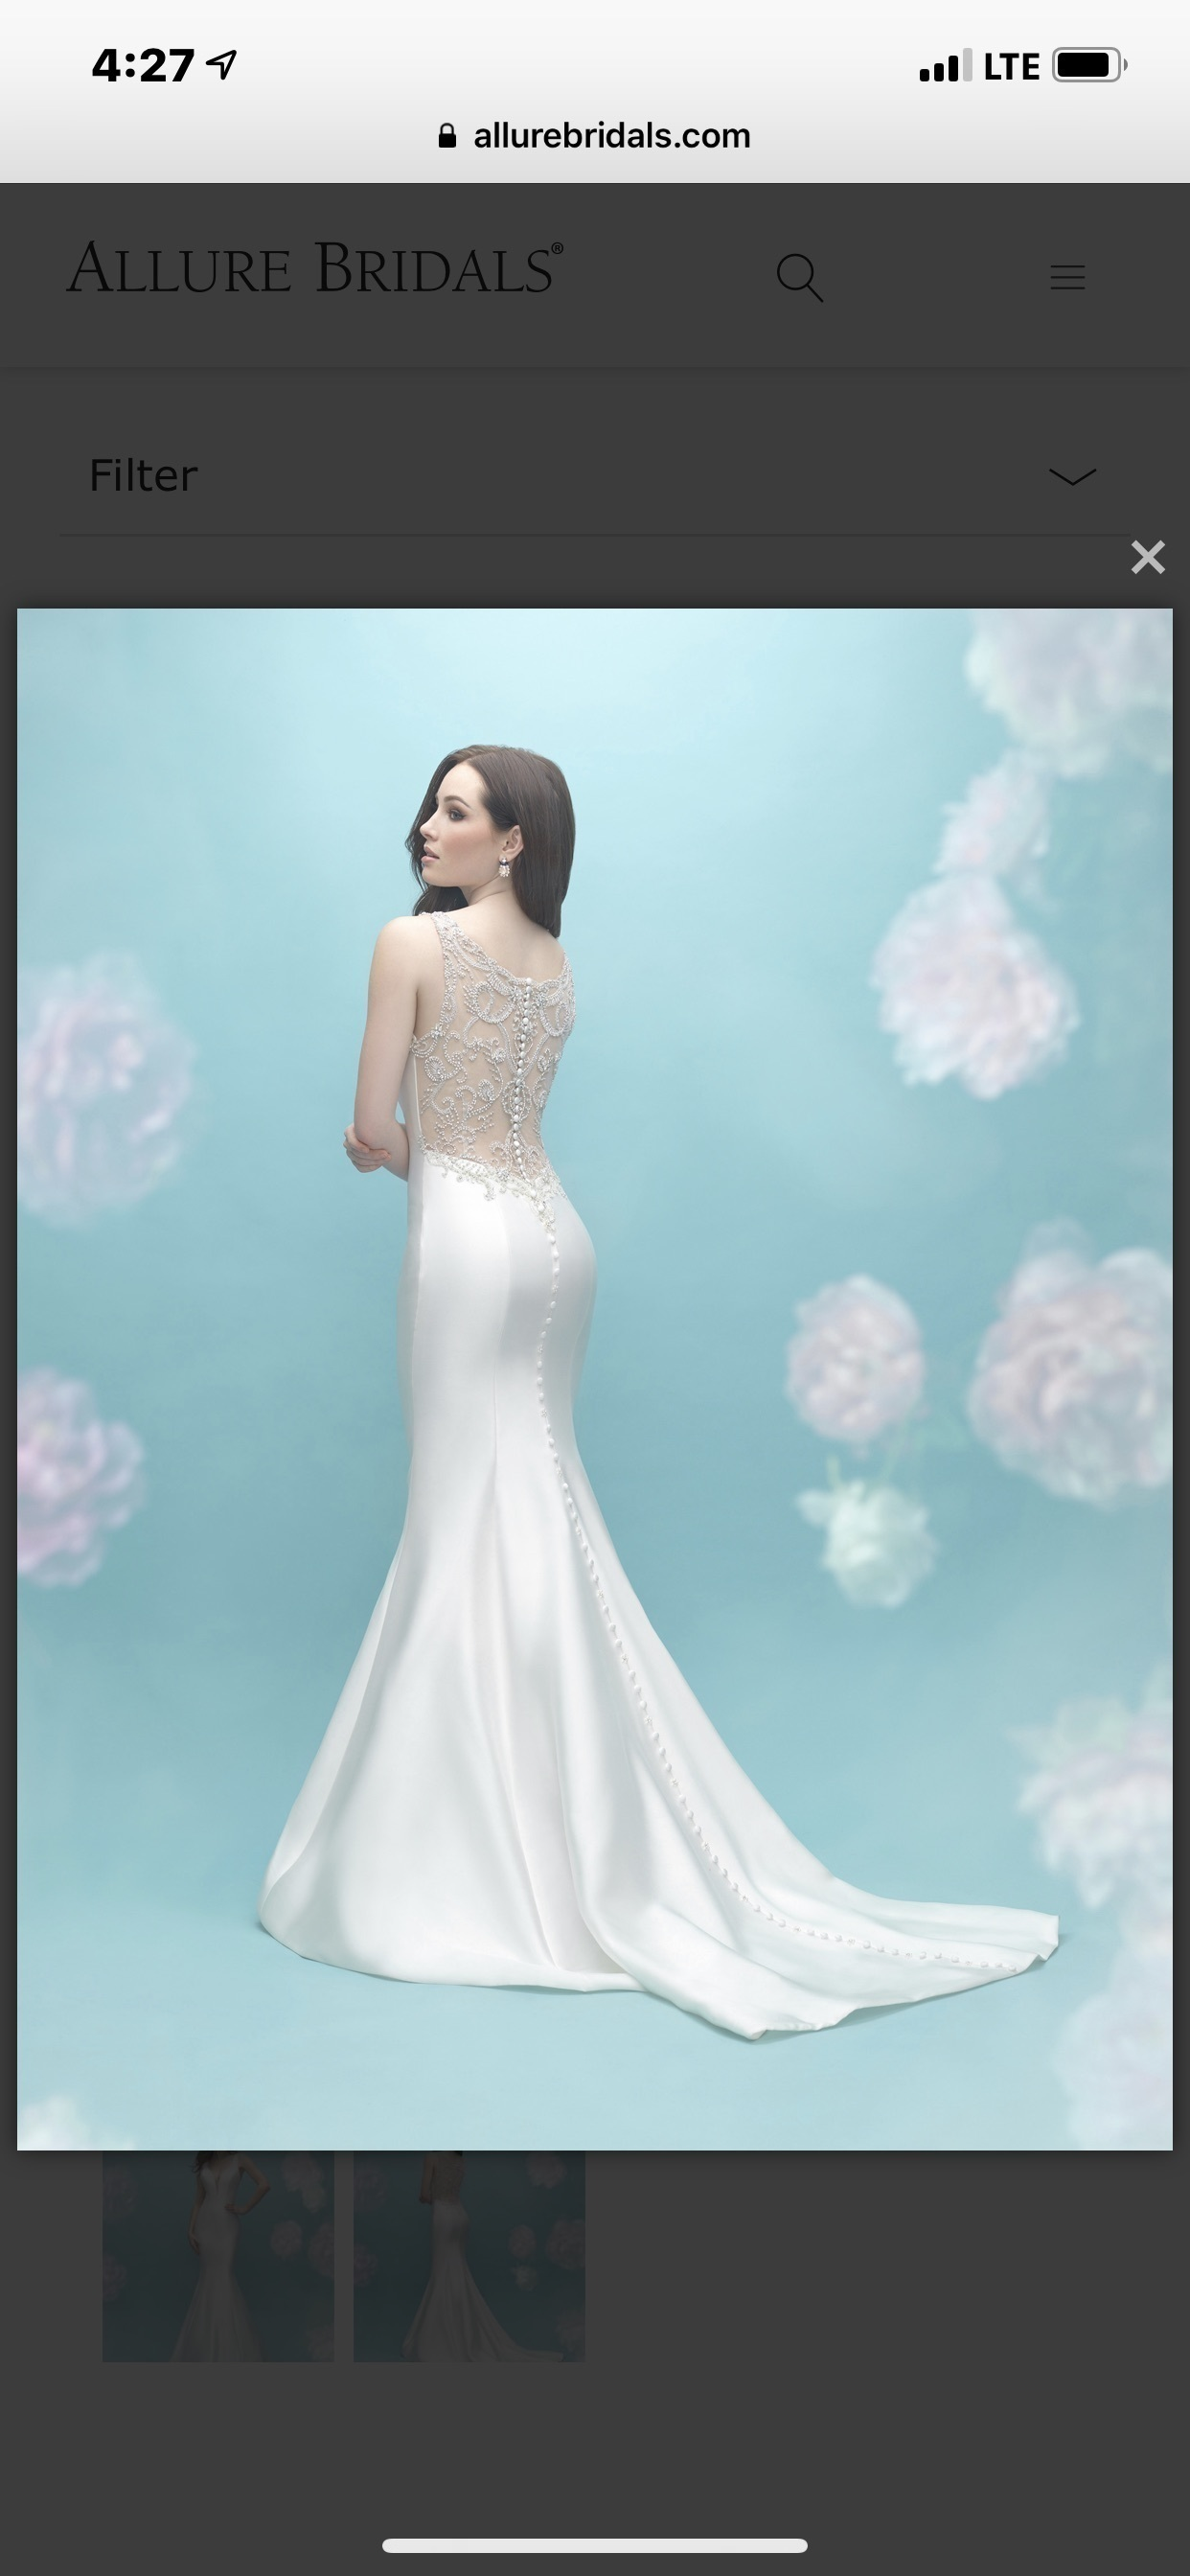 Allure bridals - 9451-I/ND/S size 16 - $800 - (56% OFF)